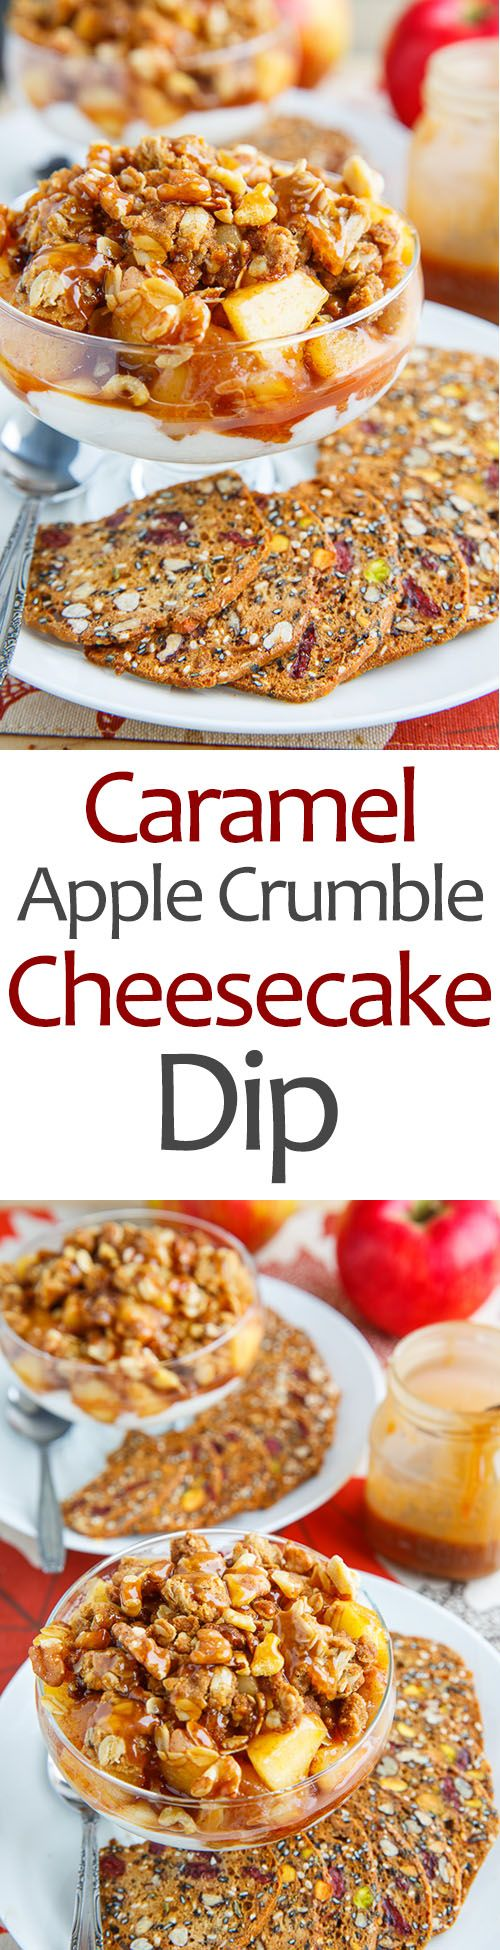 Caramel apple crumble, Cheesecake dip and Caramel apples on Pinterest